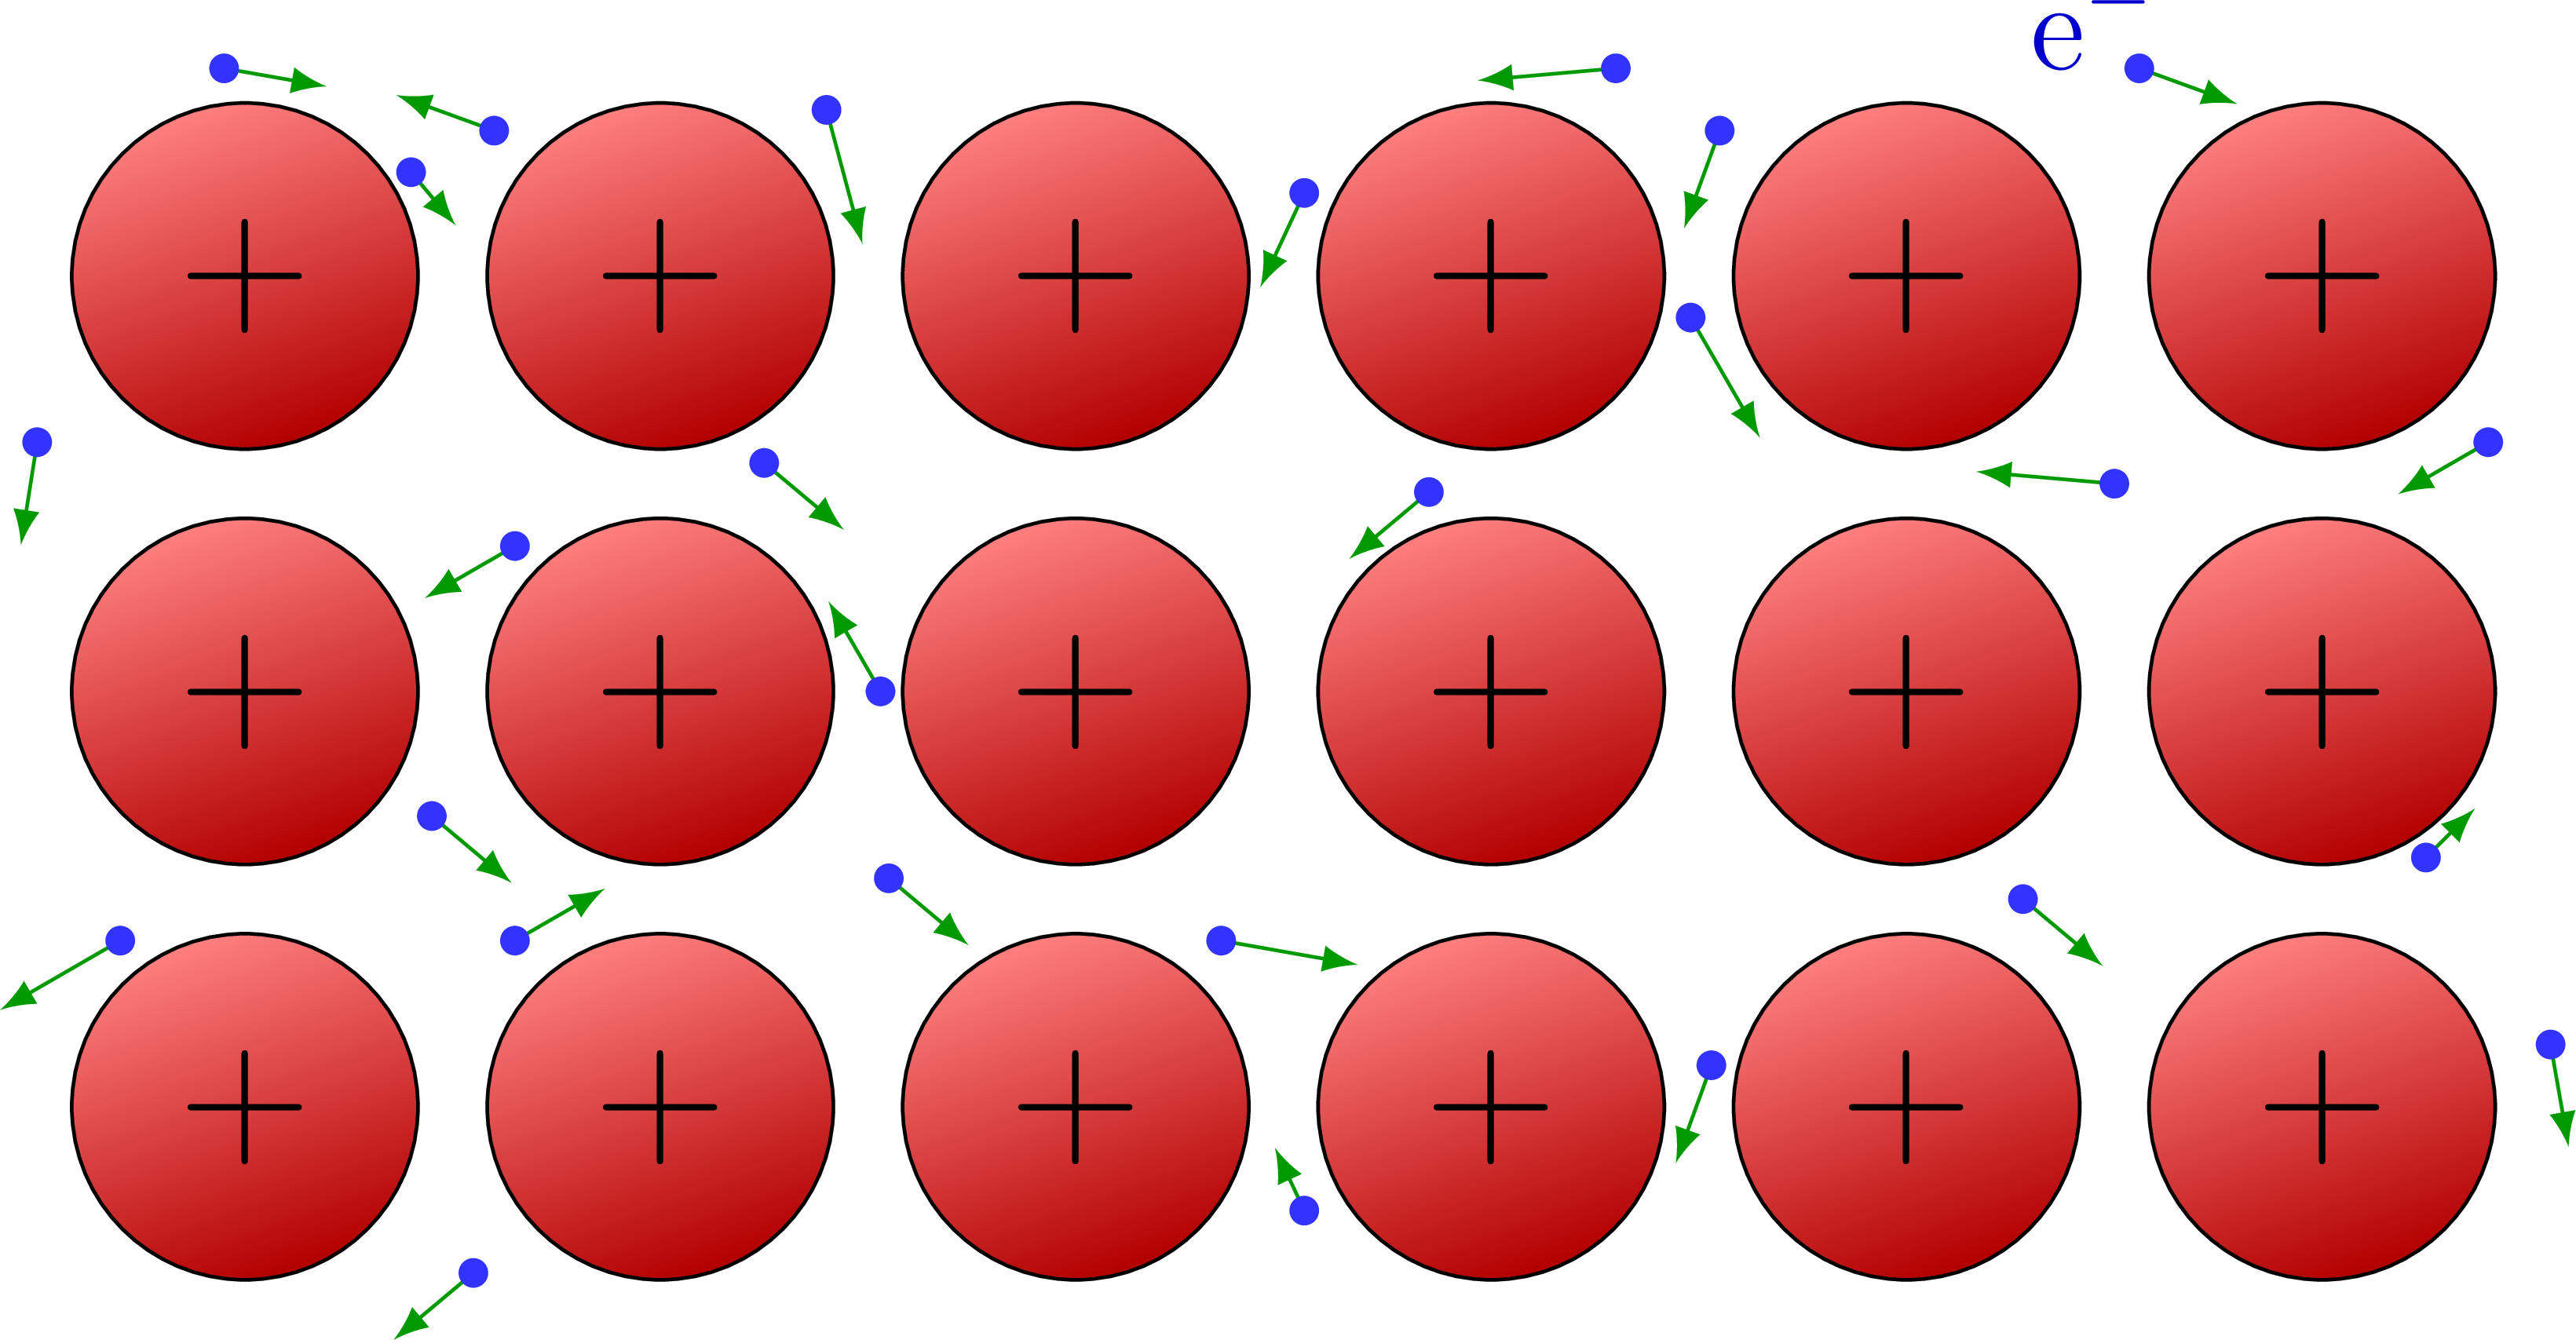 charged_particles-004.png